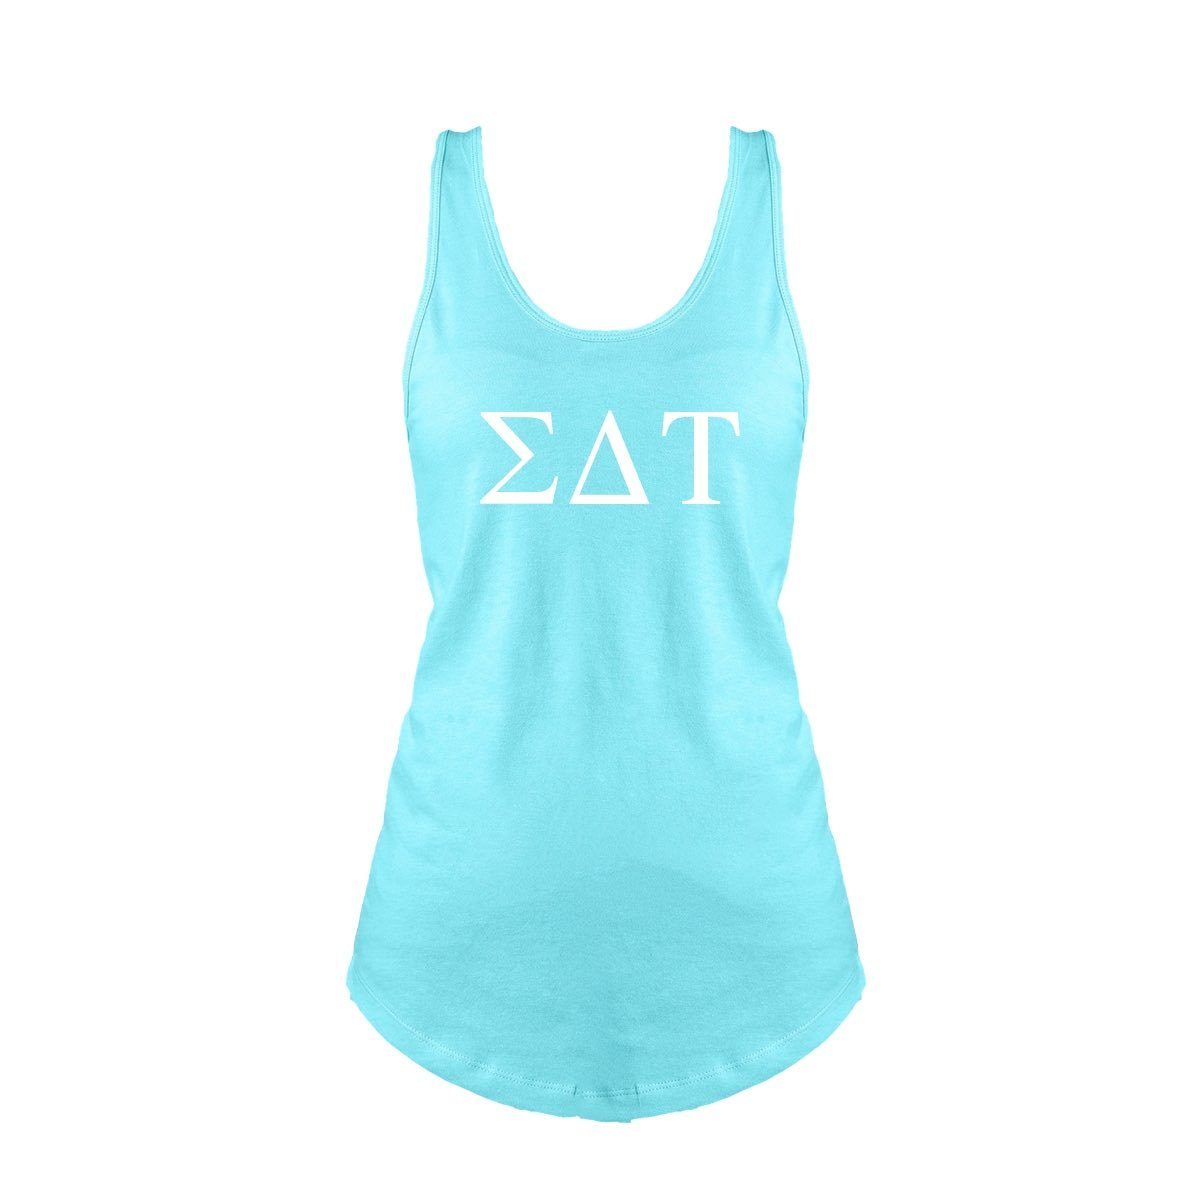 Aqua Sigma Delta Tau Tank top with Large Greek Letters on front. Perfect sorority tank top for swimsuit coverup or oversized nightshirt.